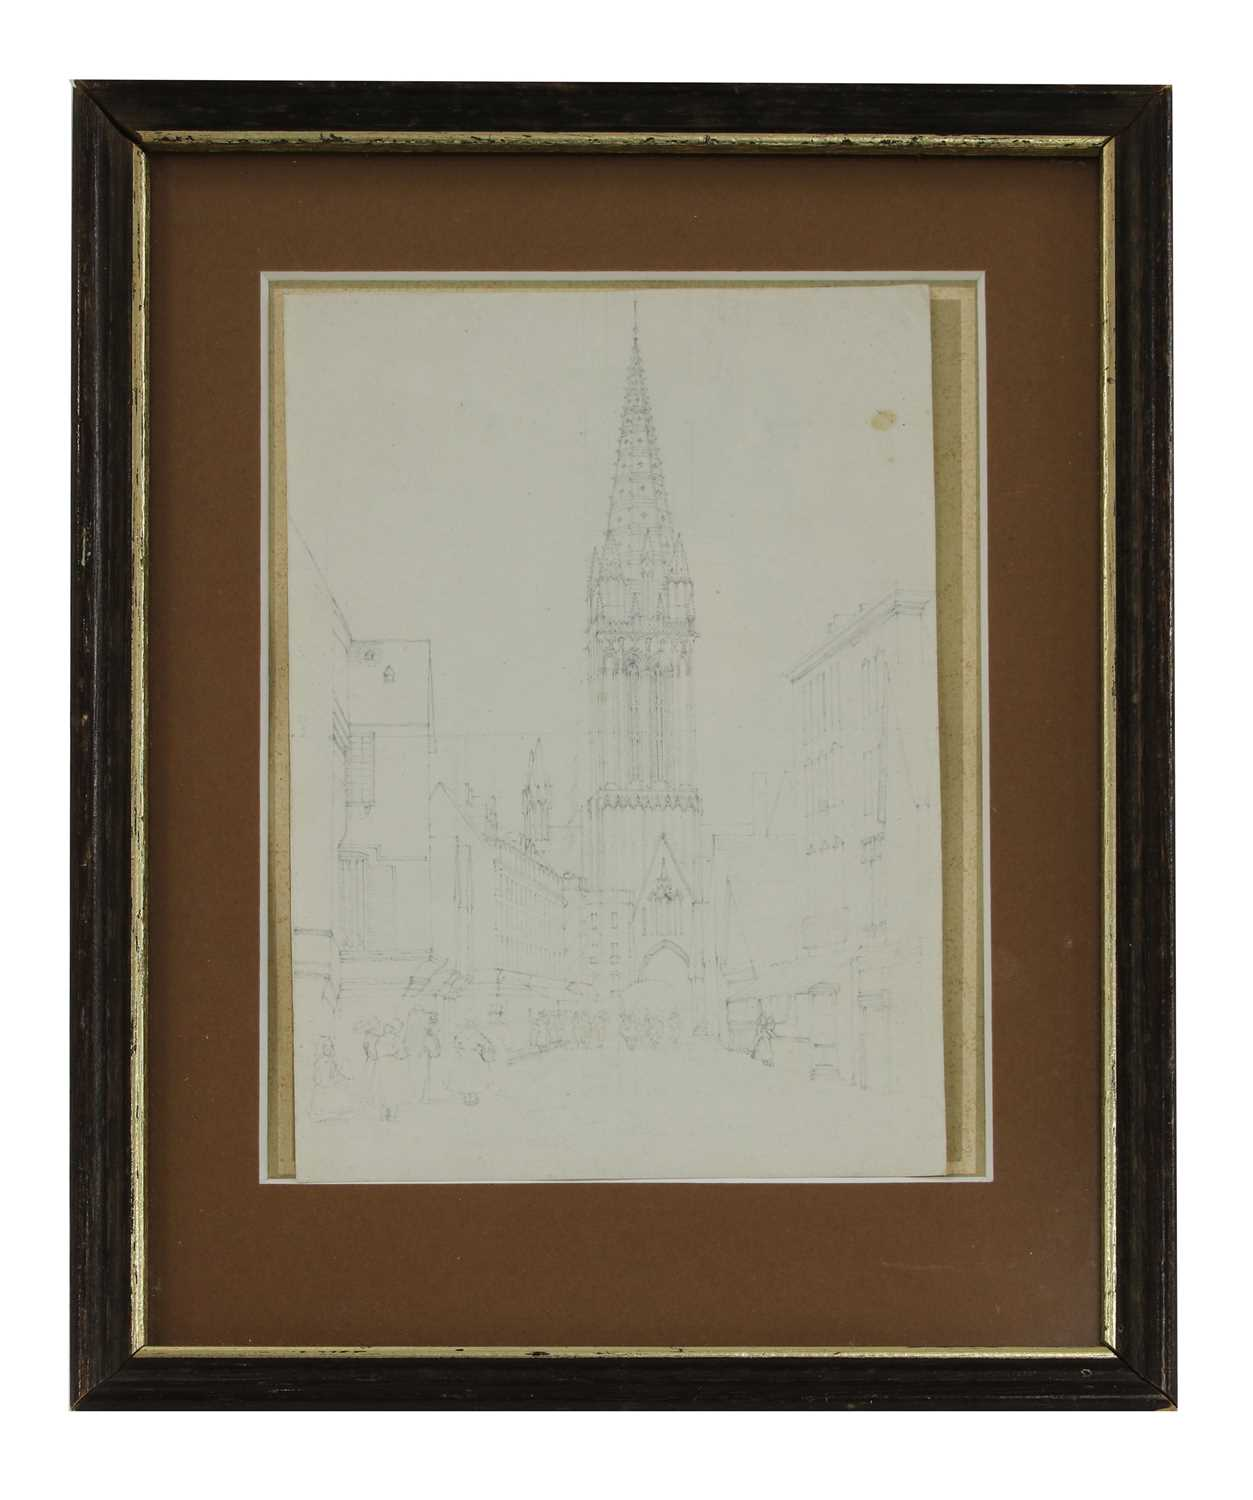 Attributed to John Sell Cotman (1782-1842) - Image 2 of 6